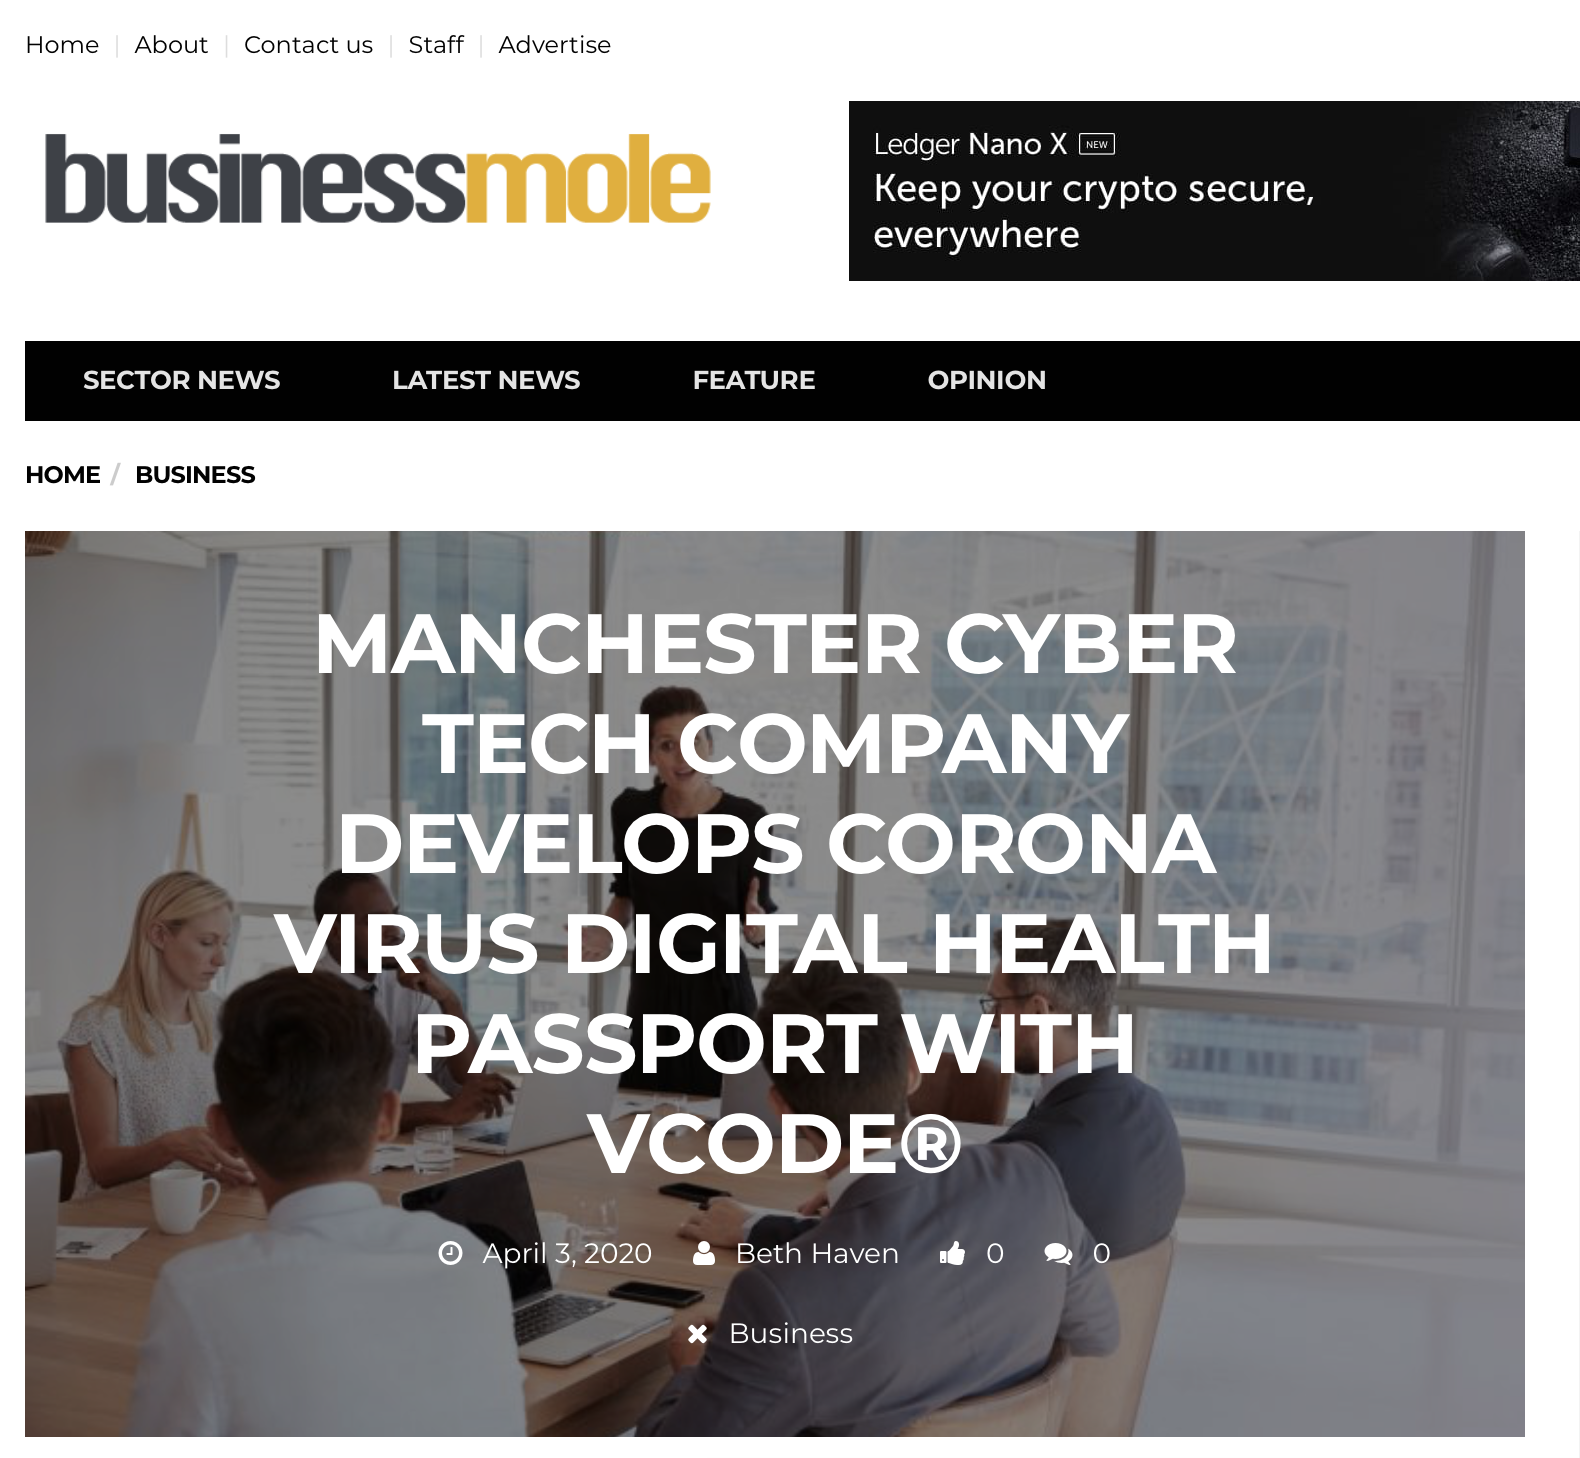 Business Mole - Health Passport - VST Enterprises